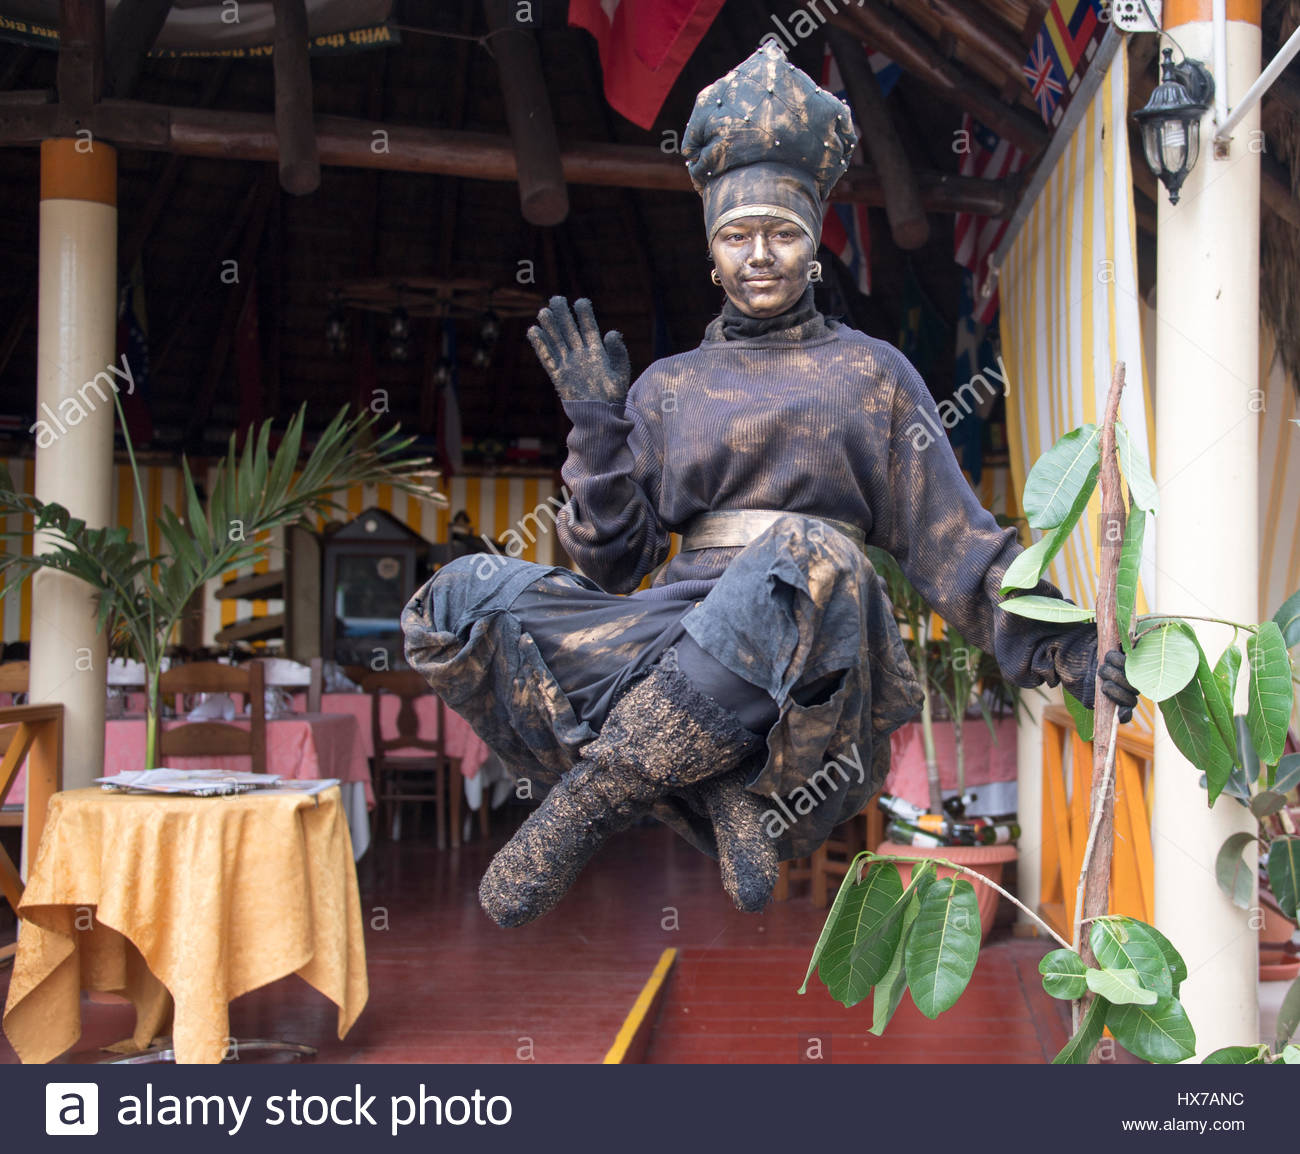 Levitating woman trick at the entrance of restaurant 'El Rancho'.  The trick make tourists stop for a while - Stock Image